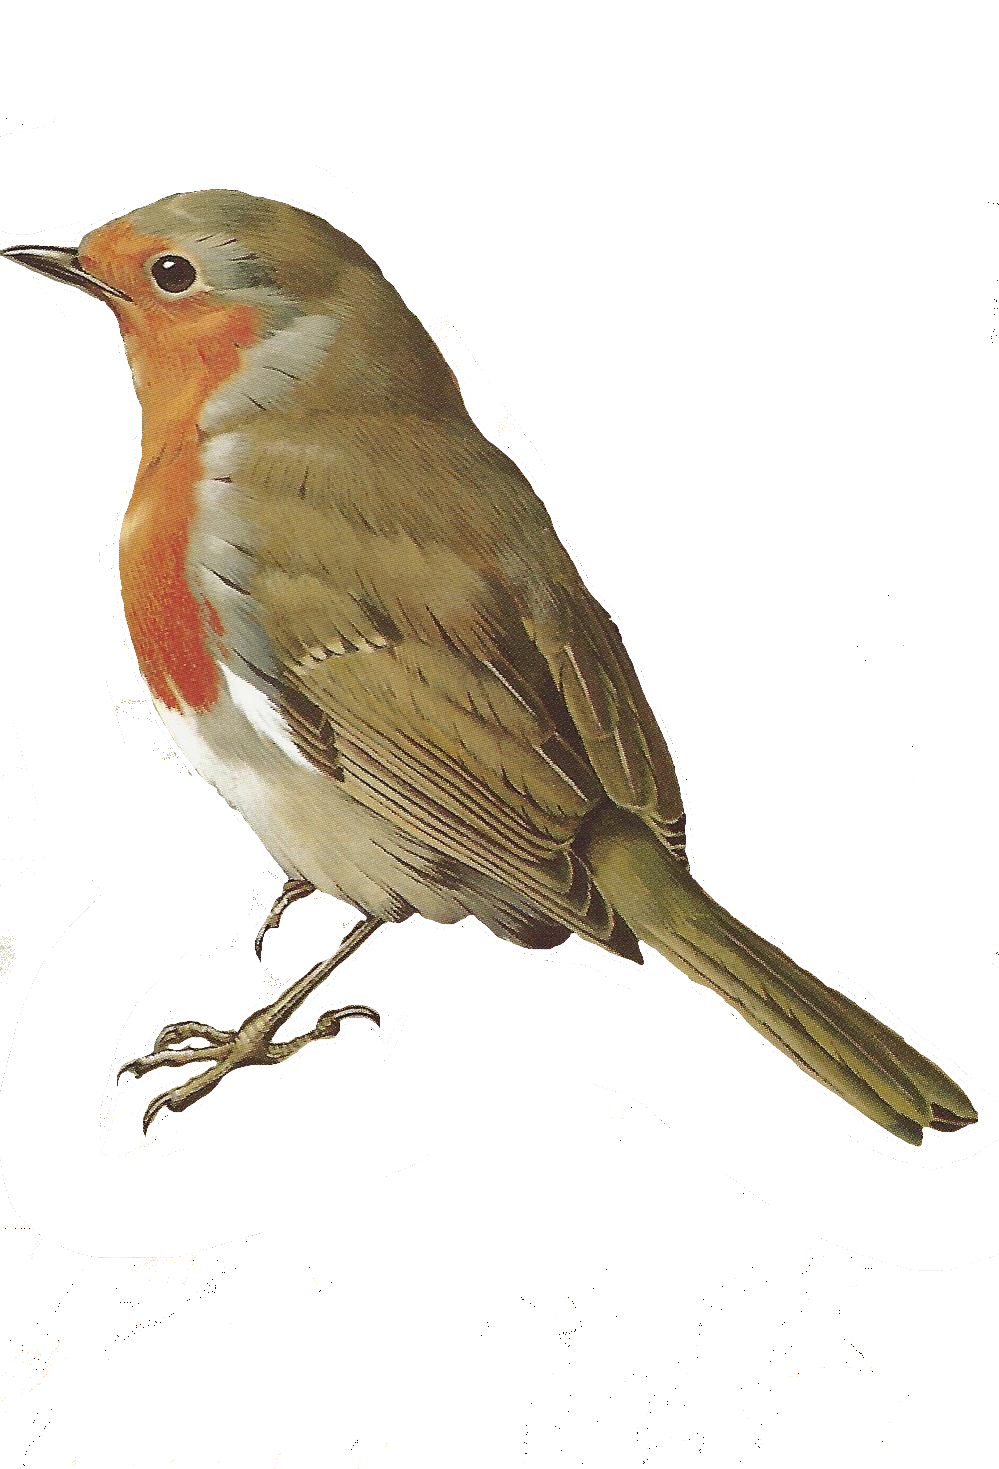 Bird clipart nightingale. Free images of birds